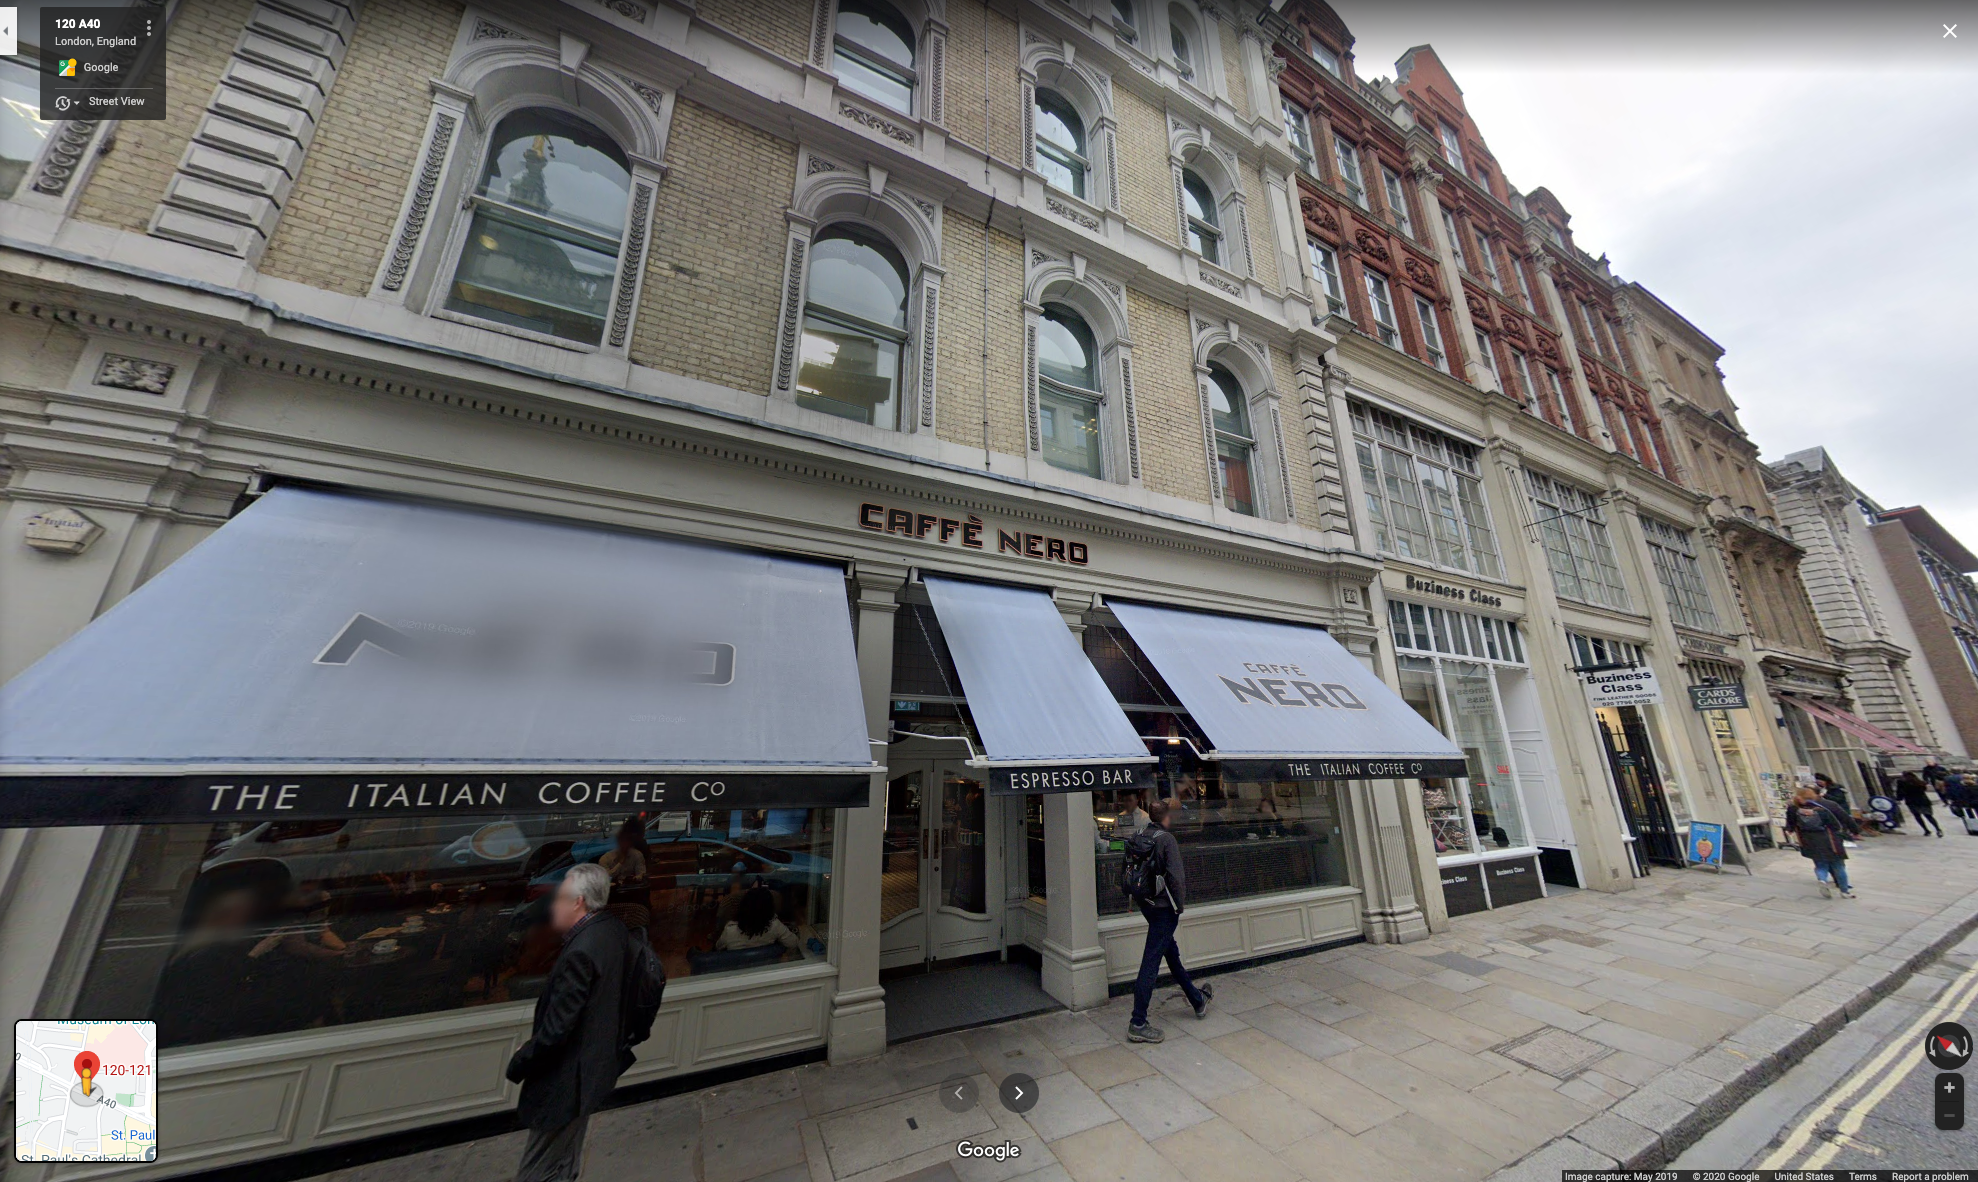 Google Street View of 121-123 Newgate Street in London, showing the location of the camera shop as it looks today.